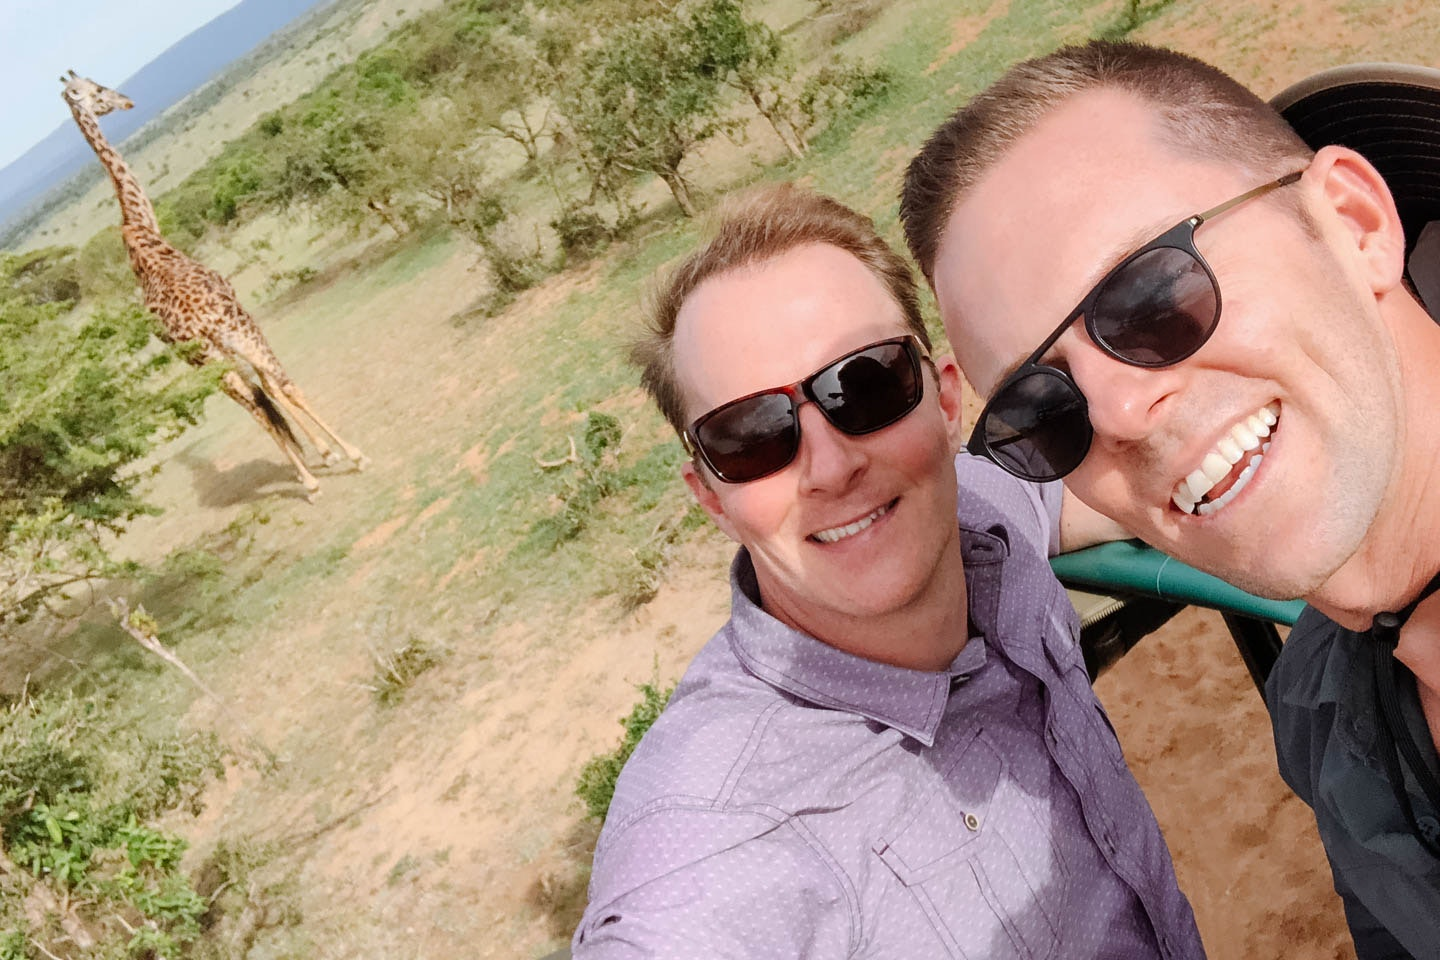 James and Michael's trip Africa